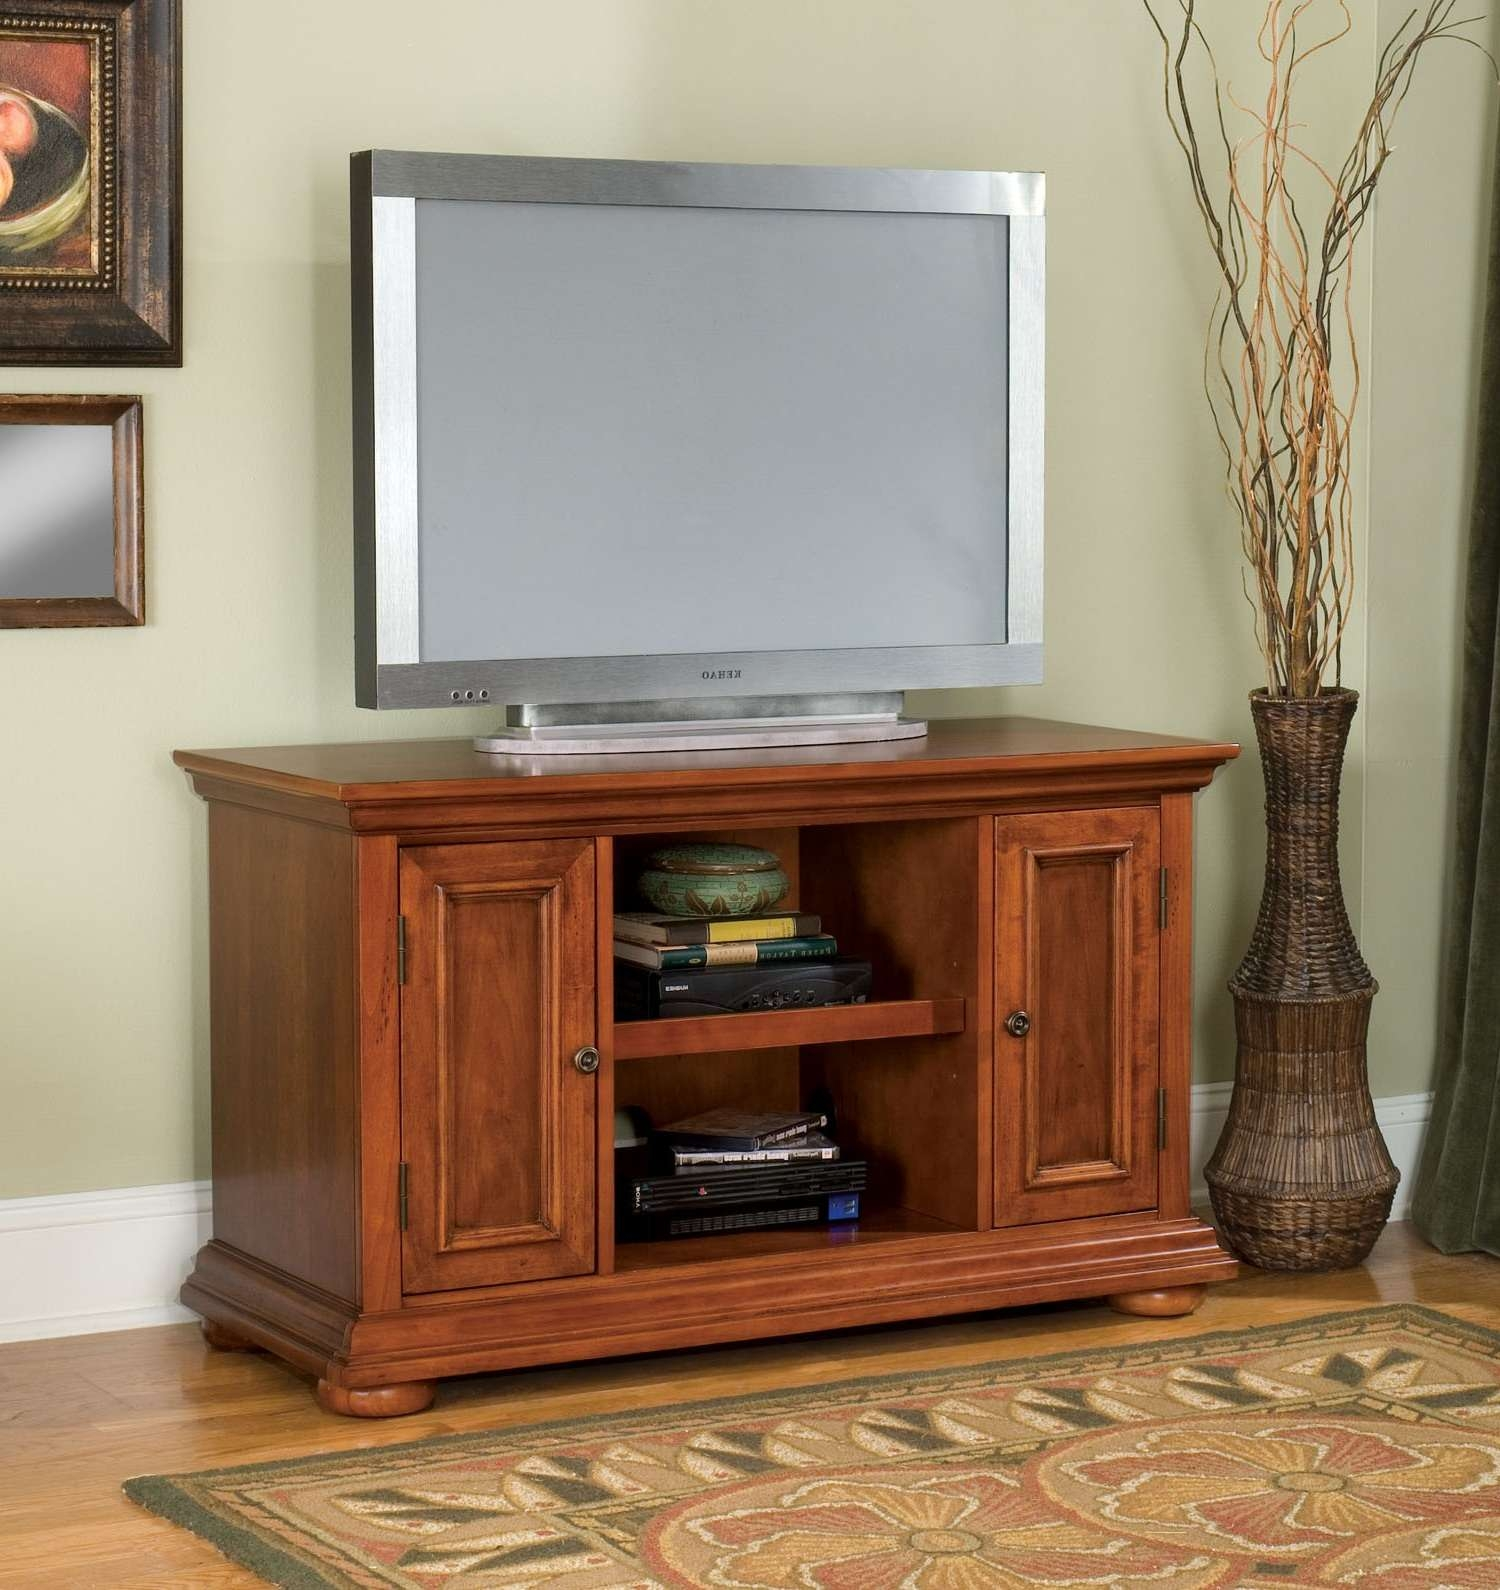 Rectangle Reverse Knife Edge Profile Cherry Wood Tv Cabinet Stand Pertaining To Cherry Wood Tv Cabinets (View 5 of 20)